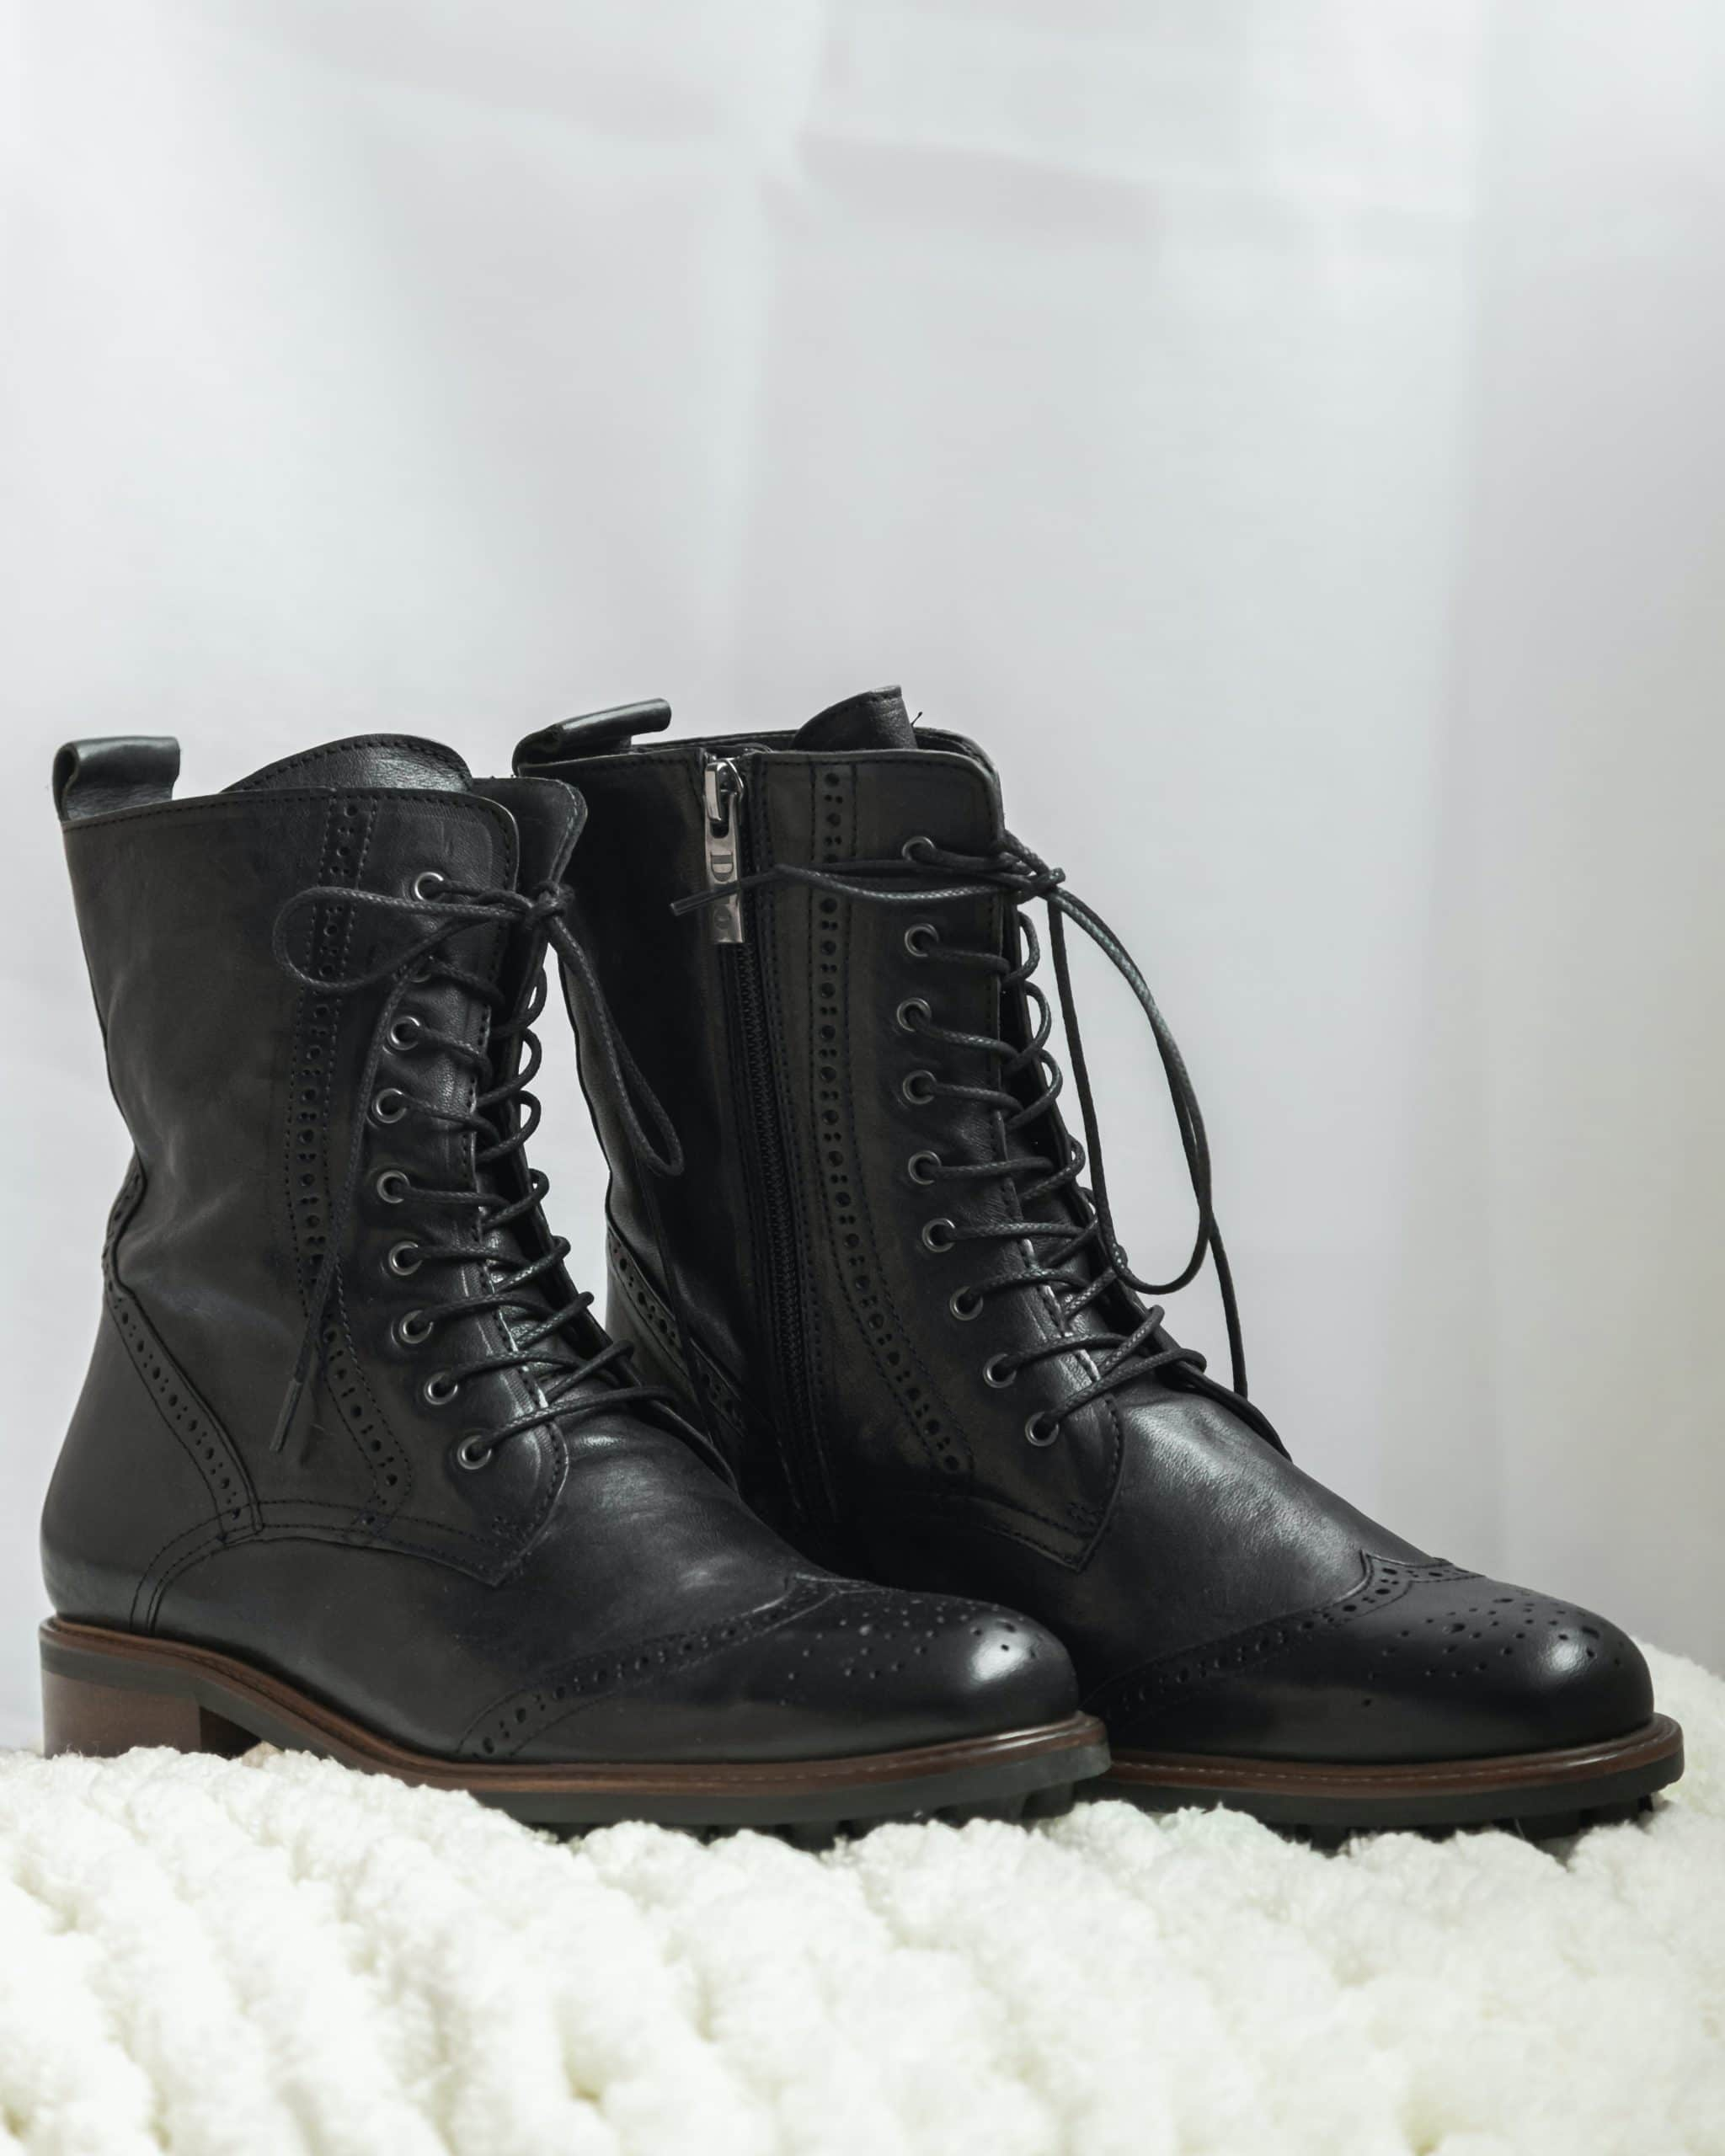 clean tactical boots